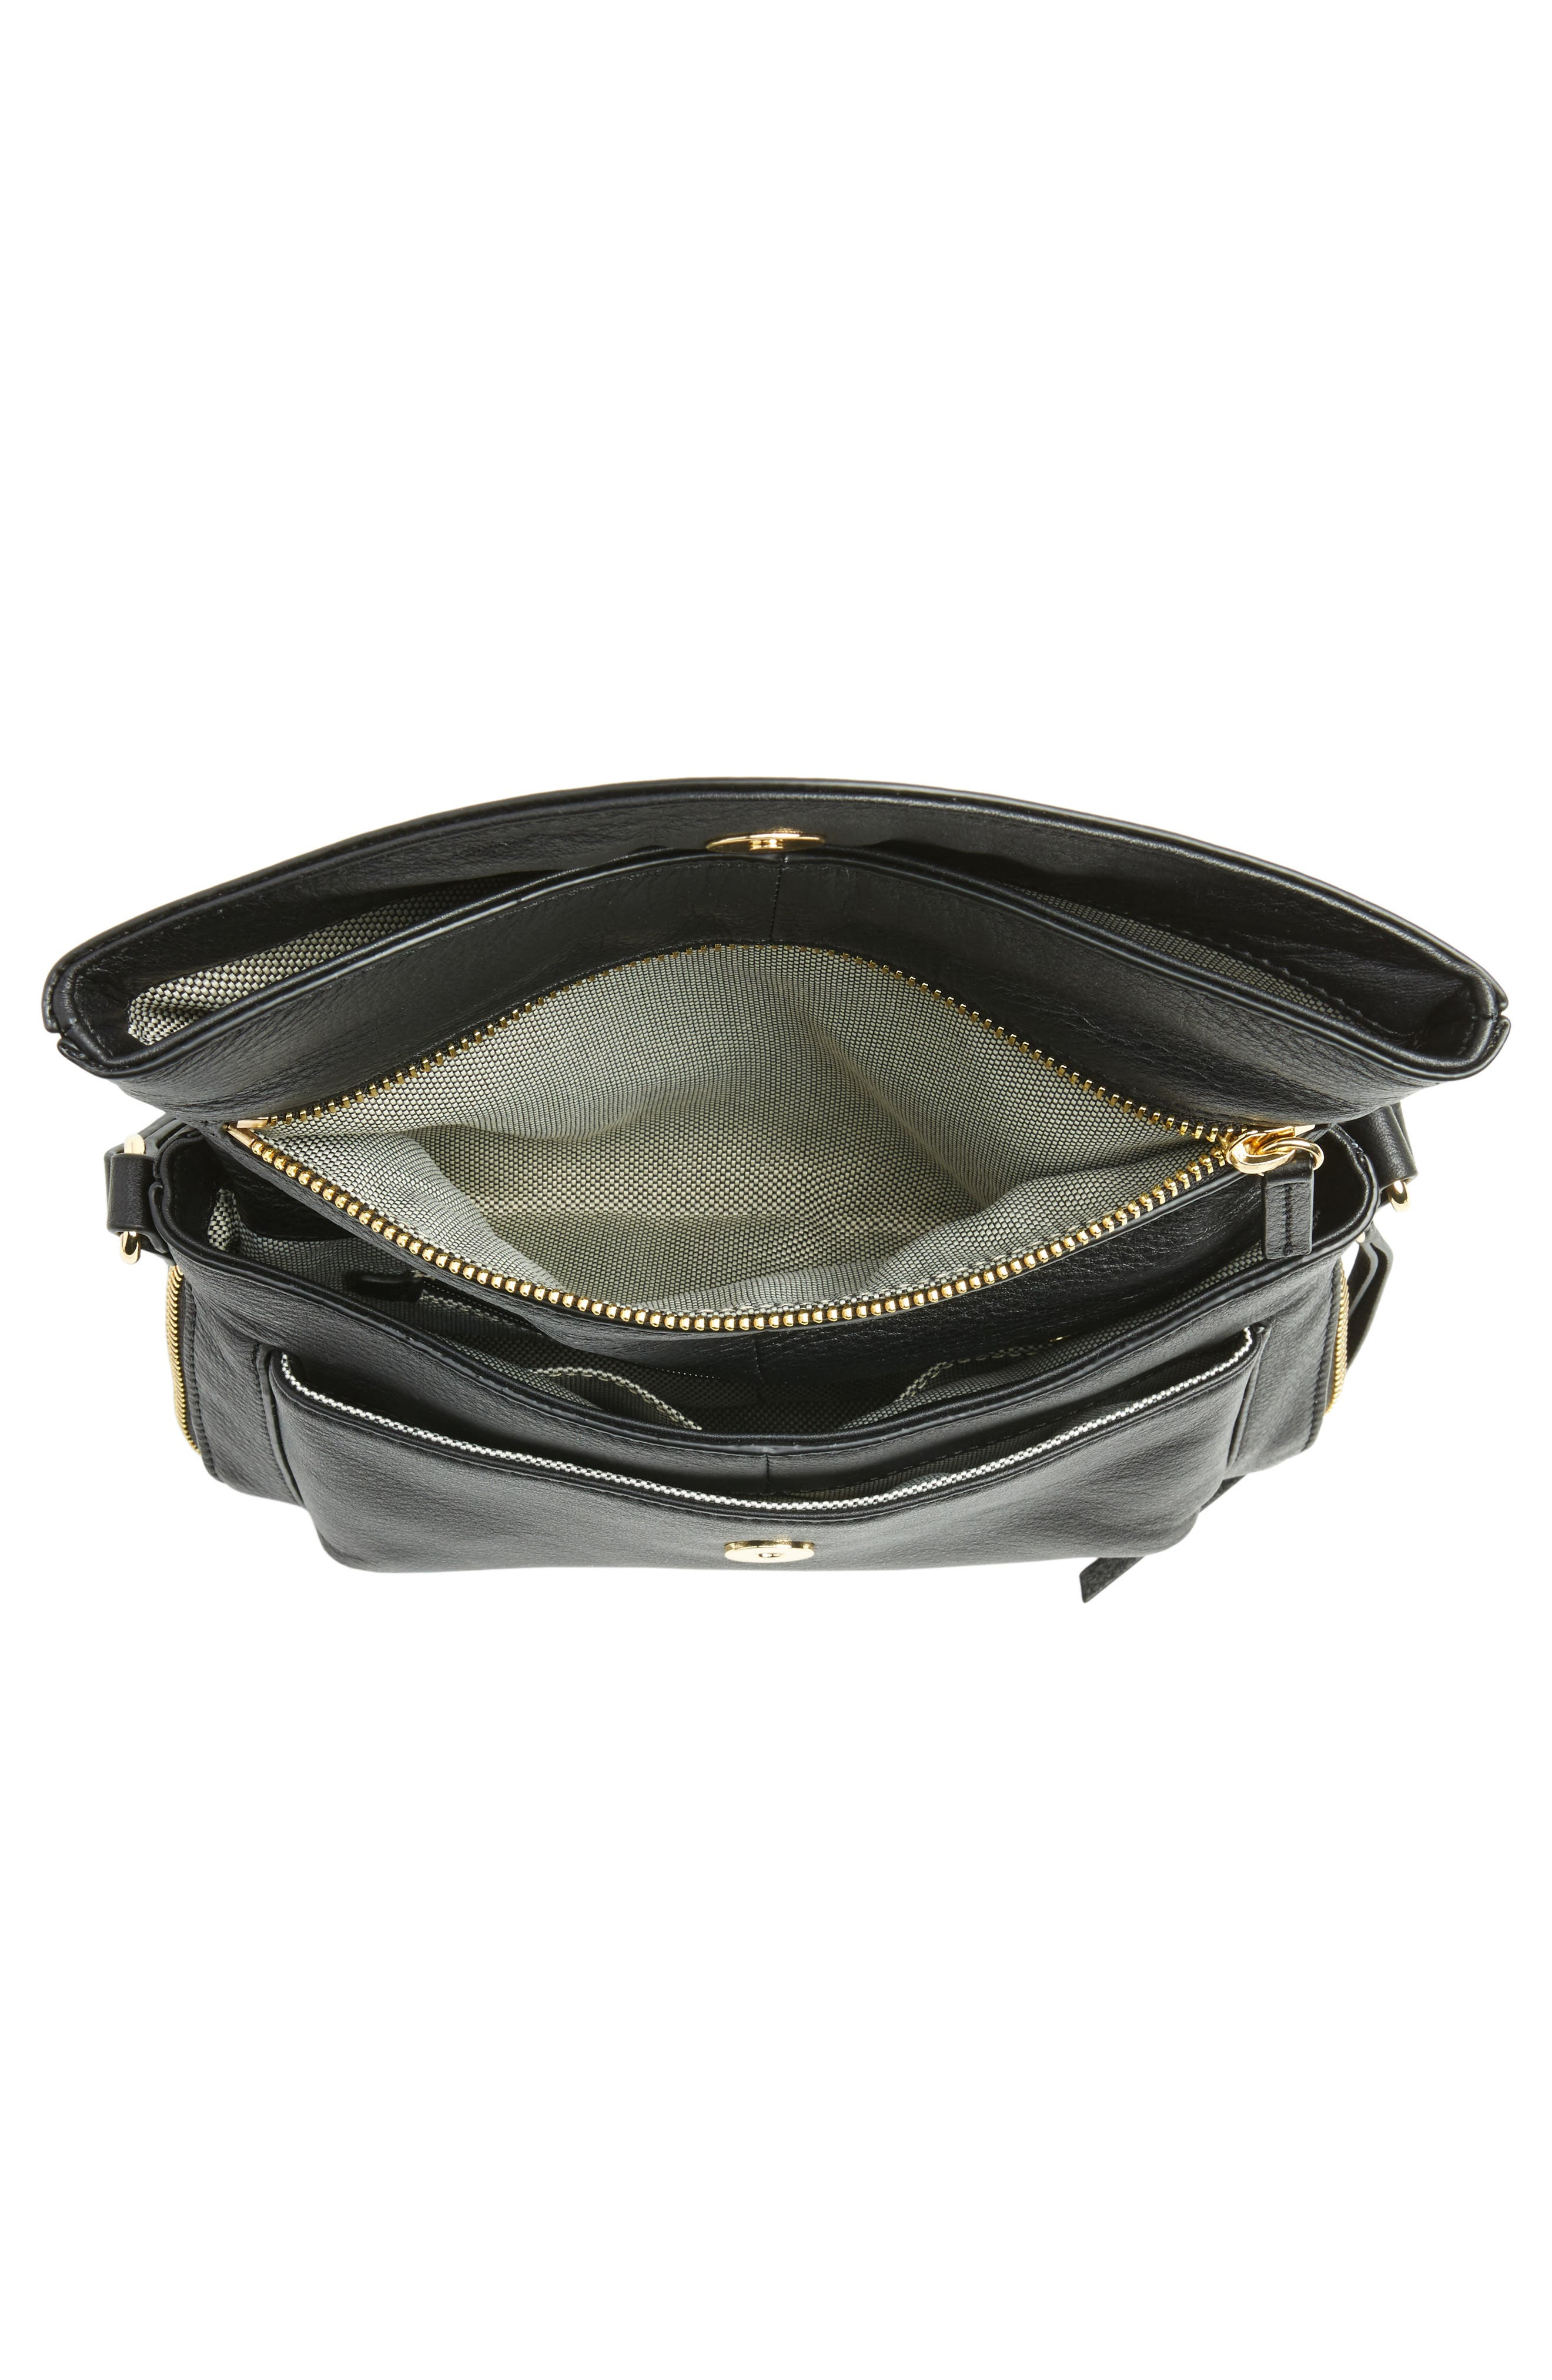 Dafni Leather Crossbody,                             Alternate thumbnail 4, color,                             Black